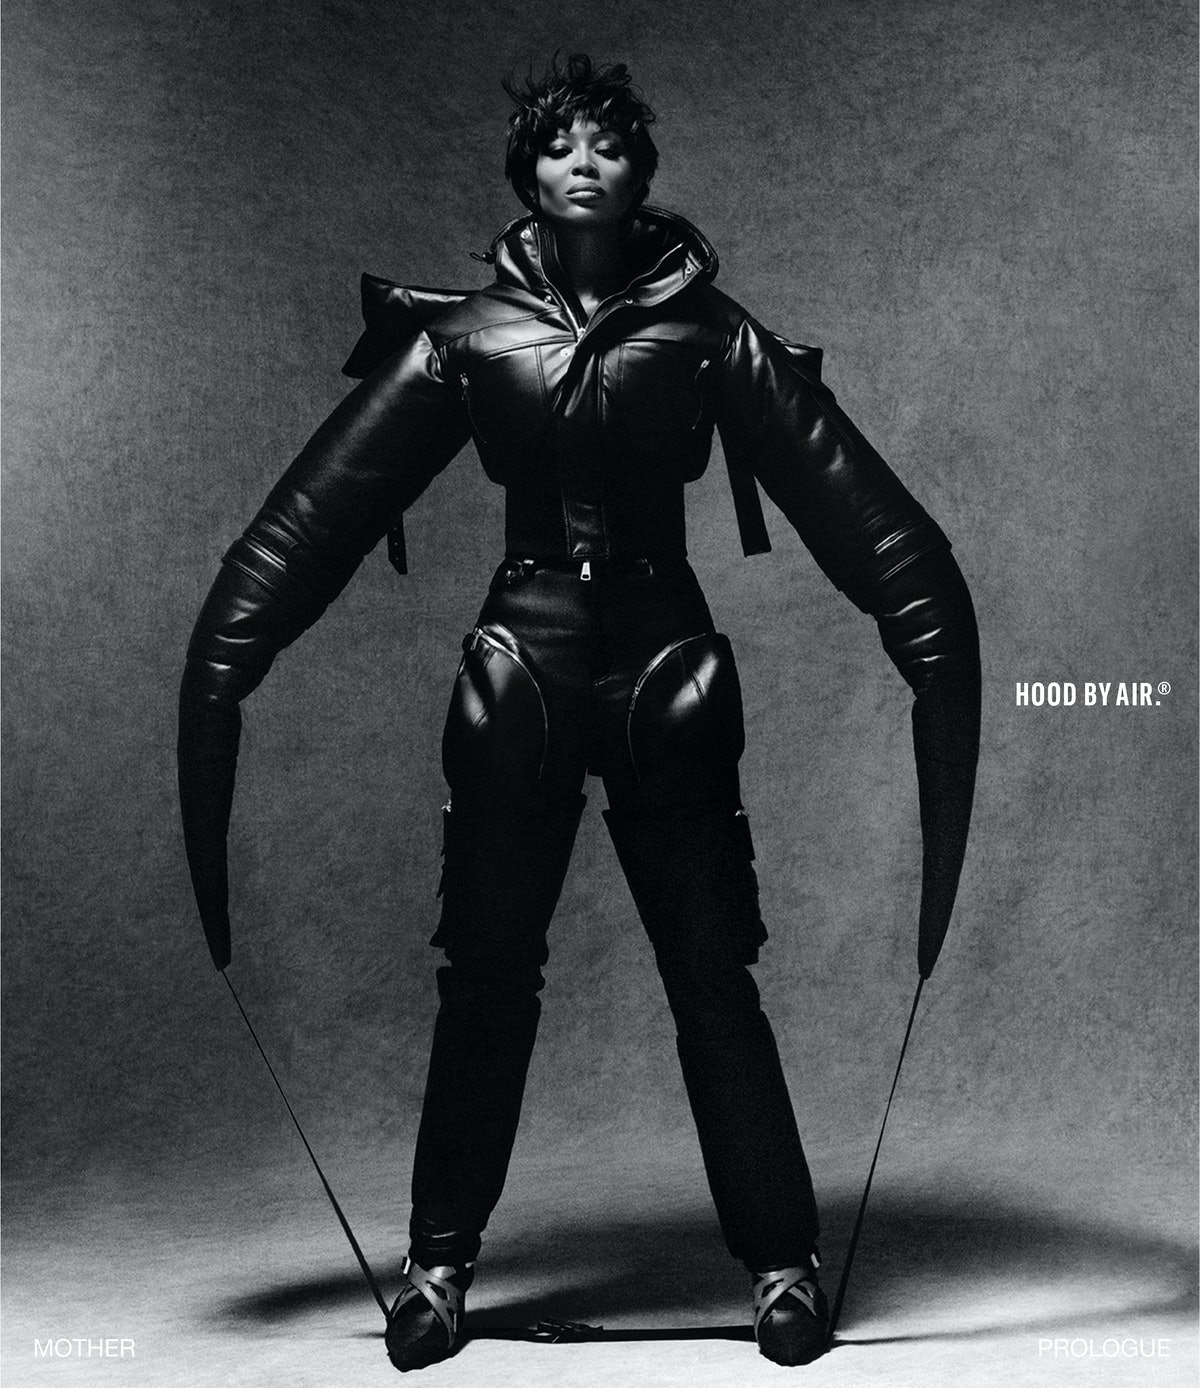 Naomi Campbell in a Hood by Air campaign